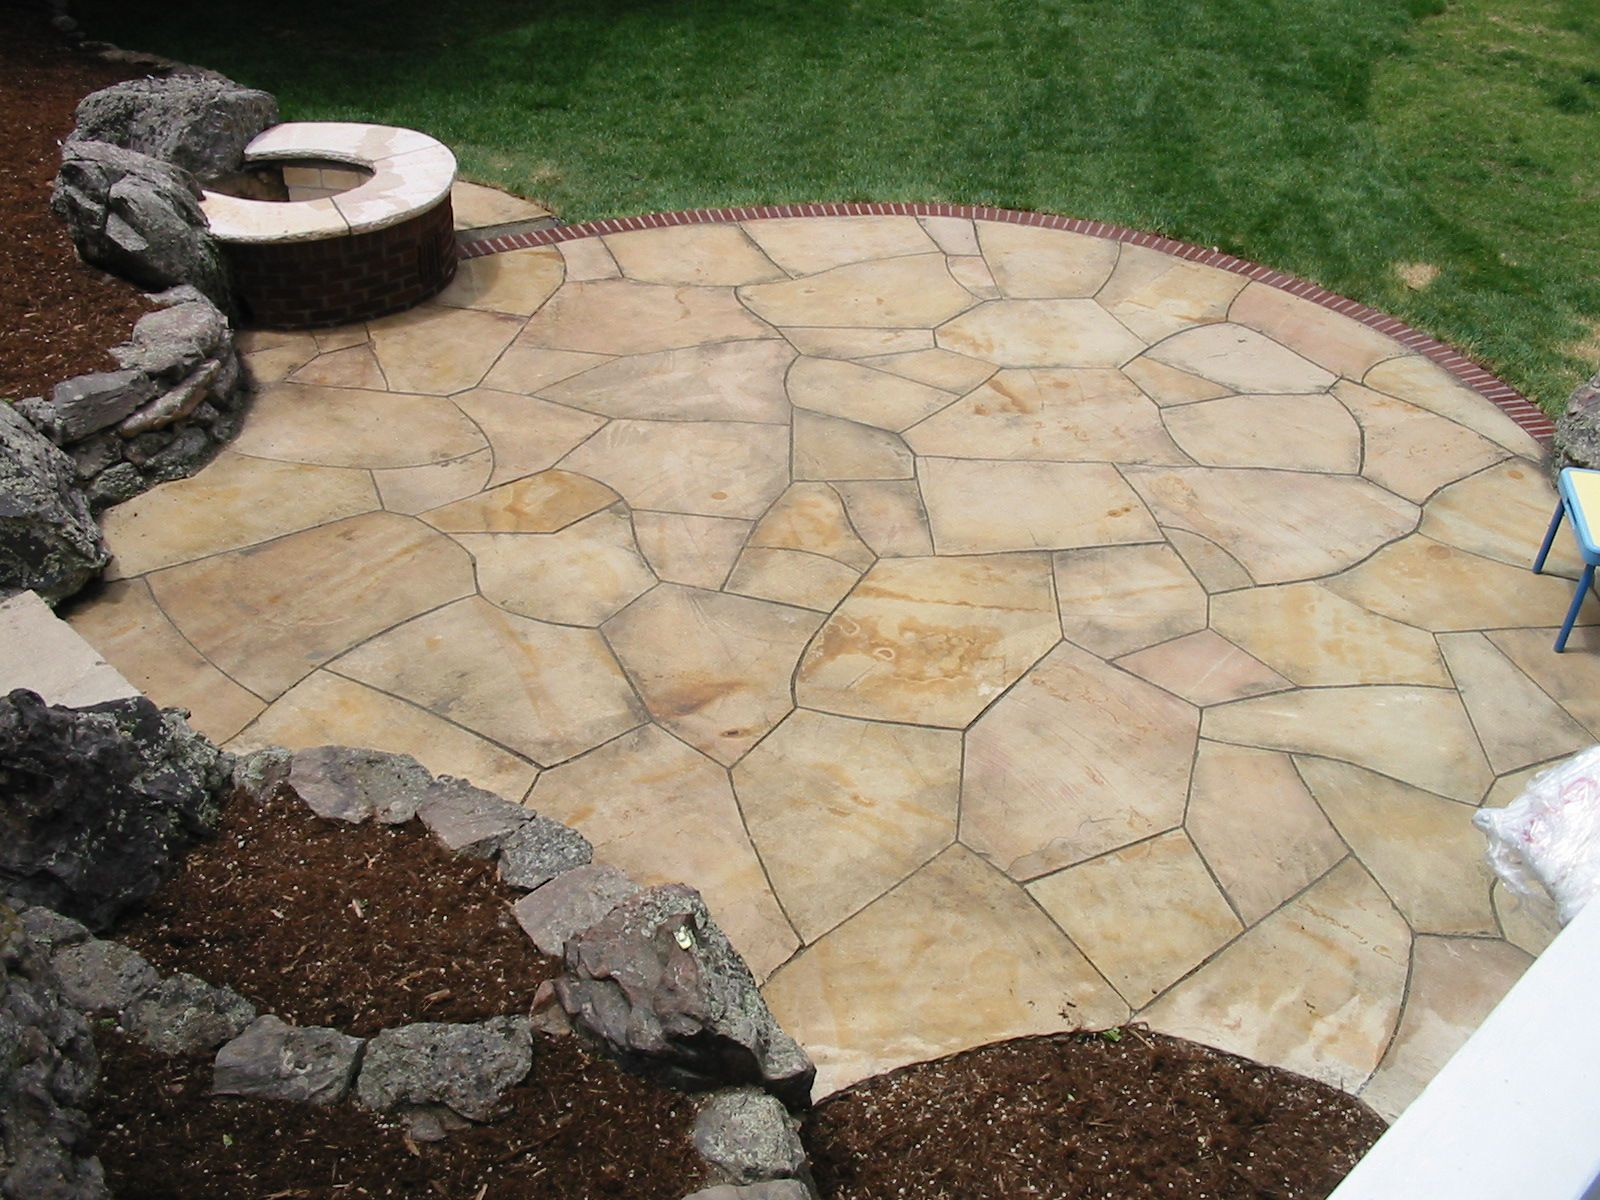 Random Cut Buff Flagstone Patio With Brick Edge And Natural Boulder Edgers.  By Native